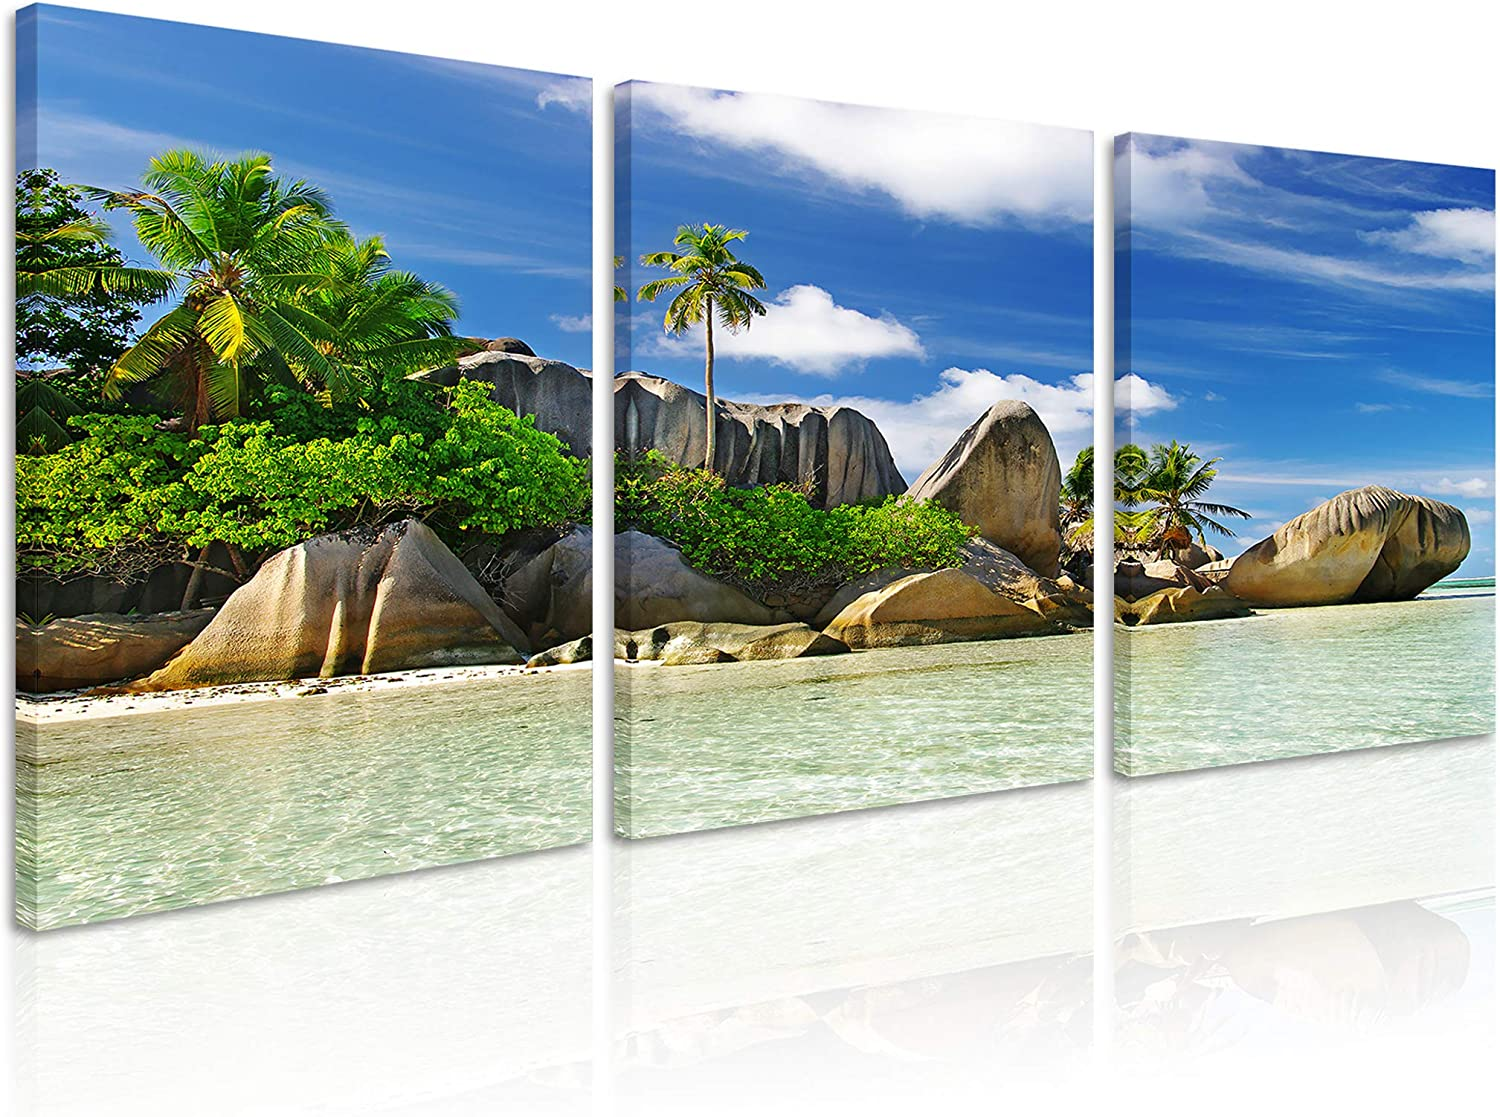 Natural Art Tropical Island Landscape Coco Trees And Huge Rocks Pictures For Living Room Wall Decor Beach Canvas Painting Wall Art Framed 12x16 Inch 3 Panels Posters Prints